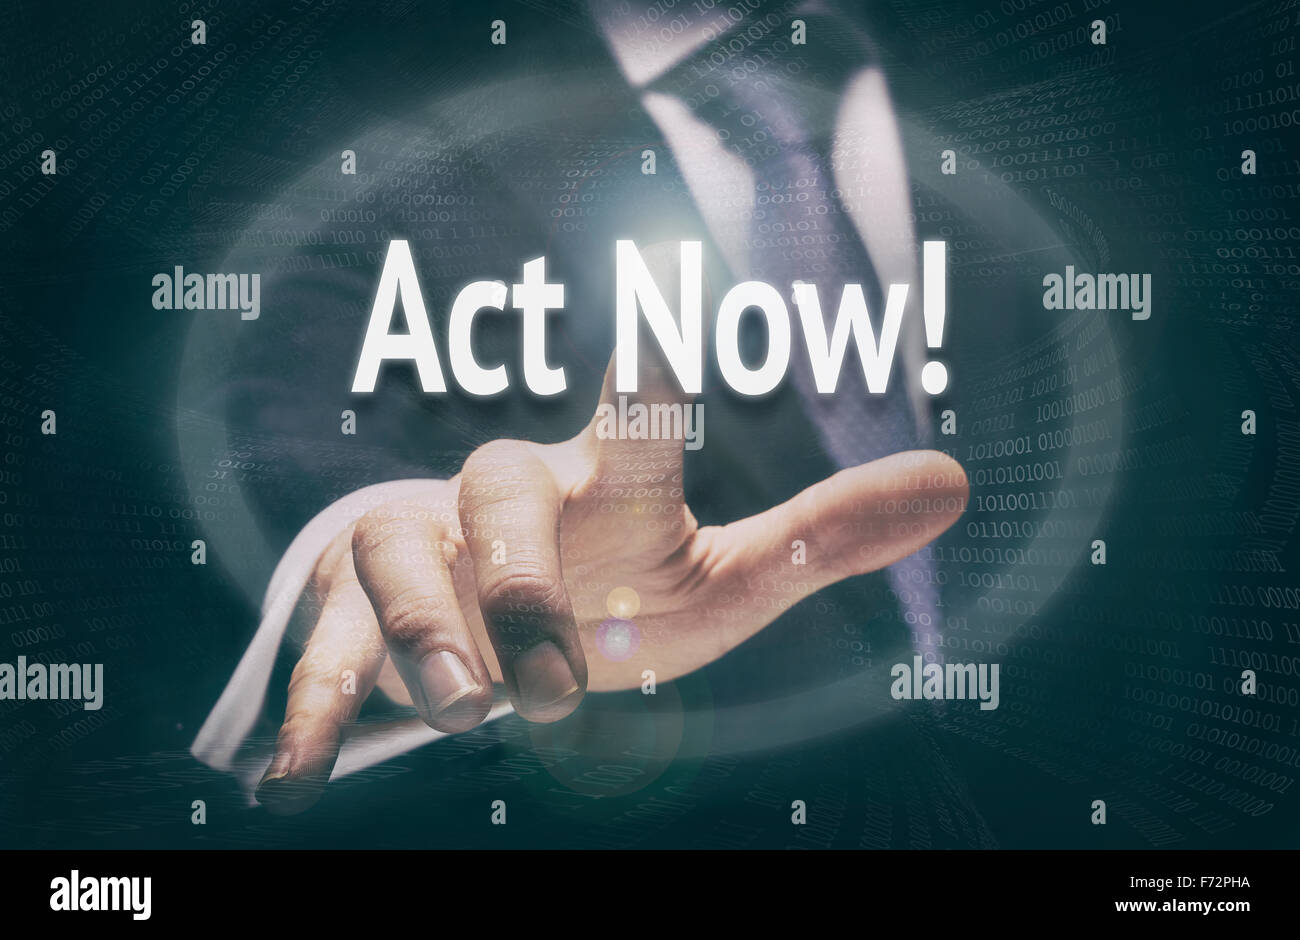 Act Now, Induction Training headlines concept. - Stock Image